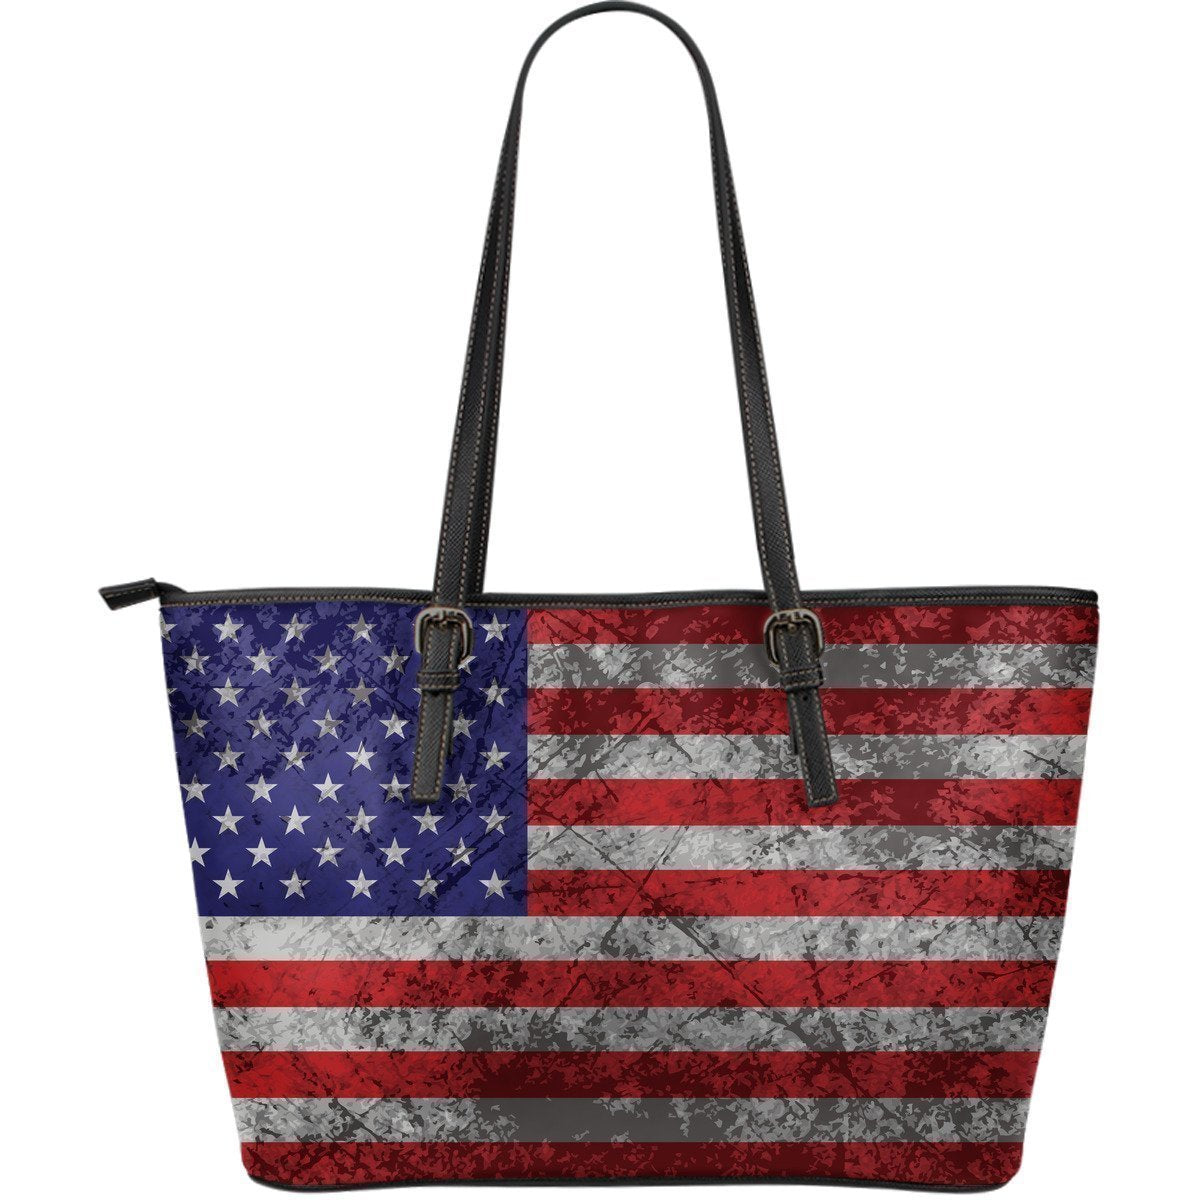 Grunge American Flag Patriotic Leather Tote Bag GearFrost